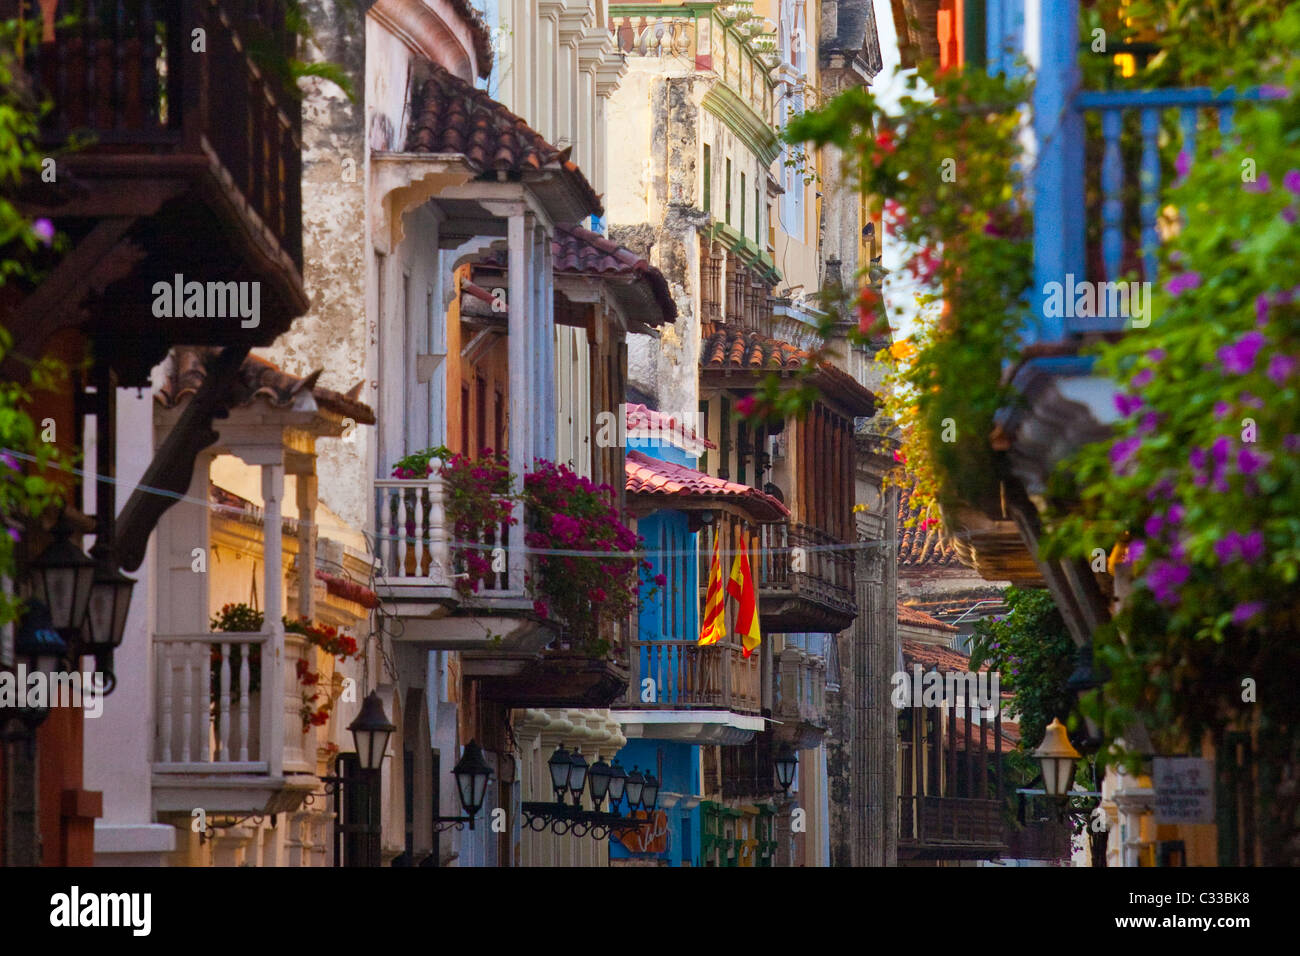 Balconies, Cartagena, Colombia - Stock Image